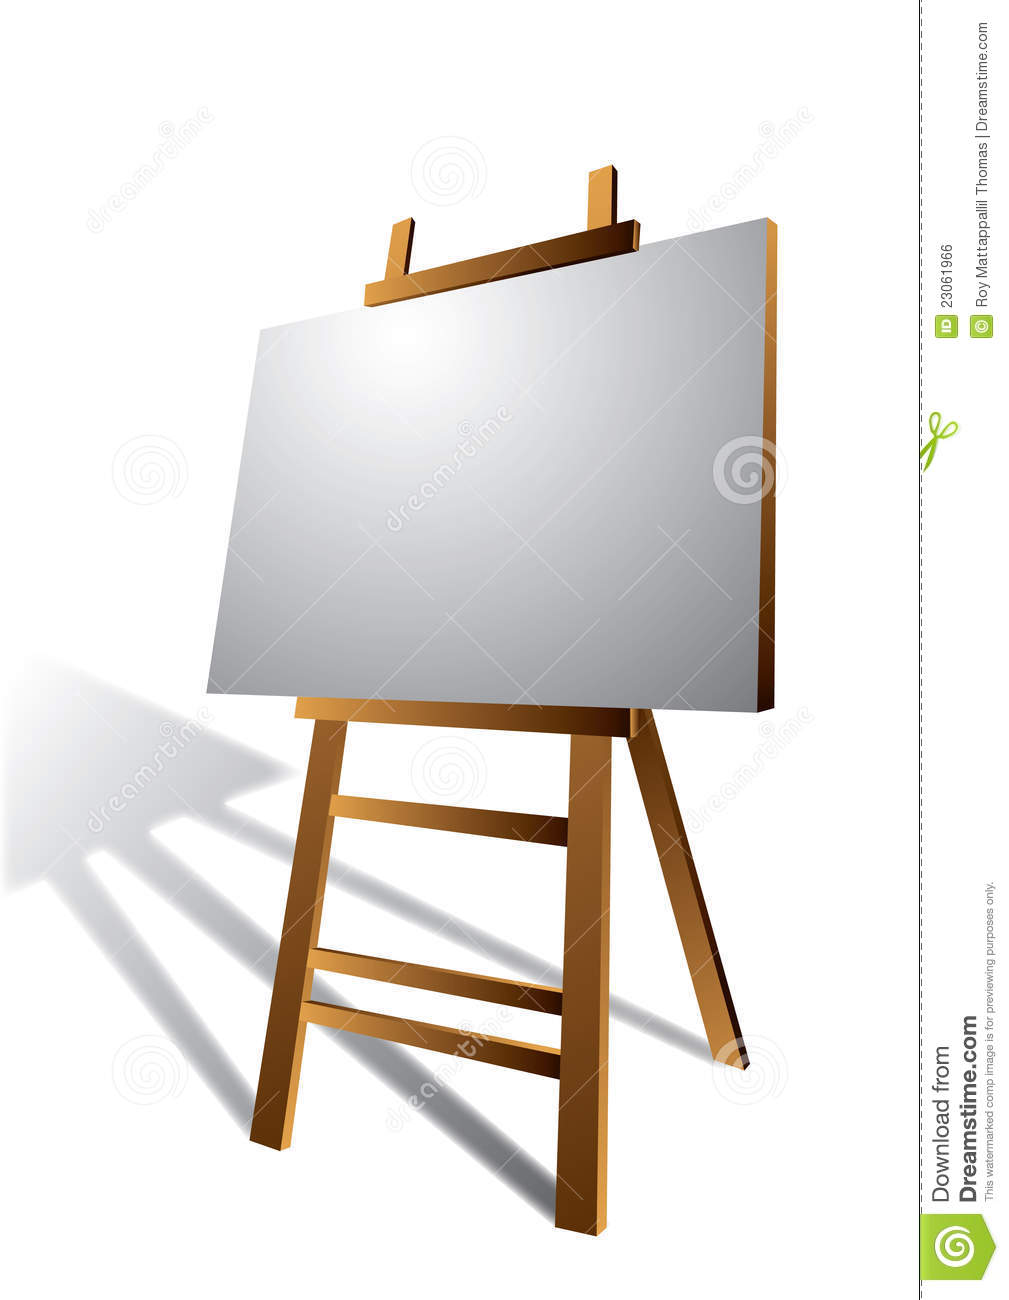 Canvas On Wooden Art Easel Royalty Free Stock Image - Image: 23061966